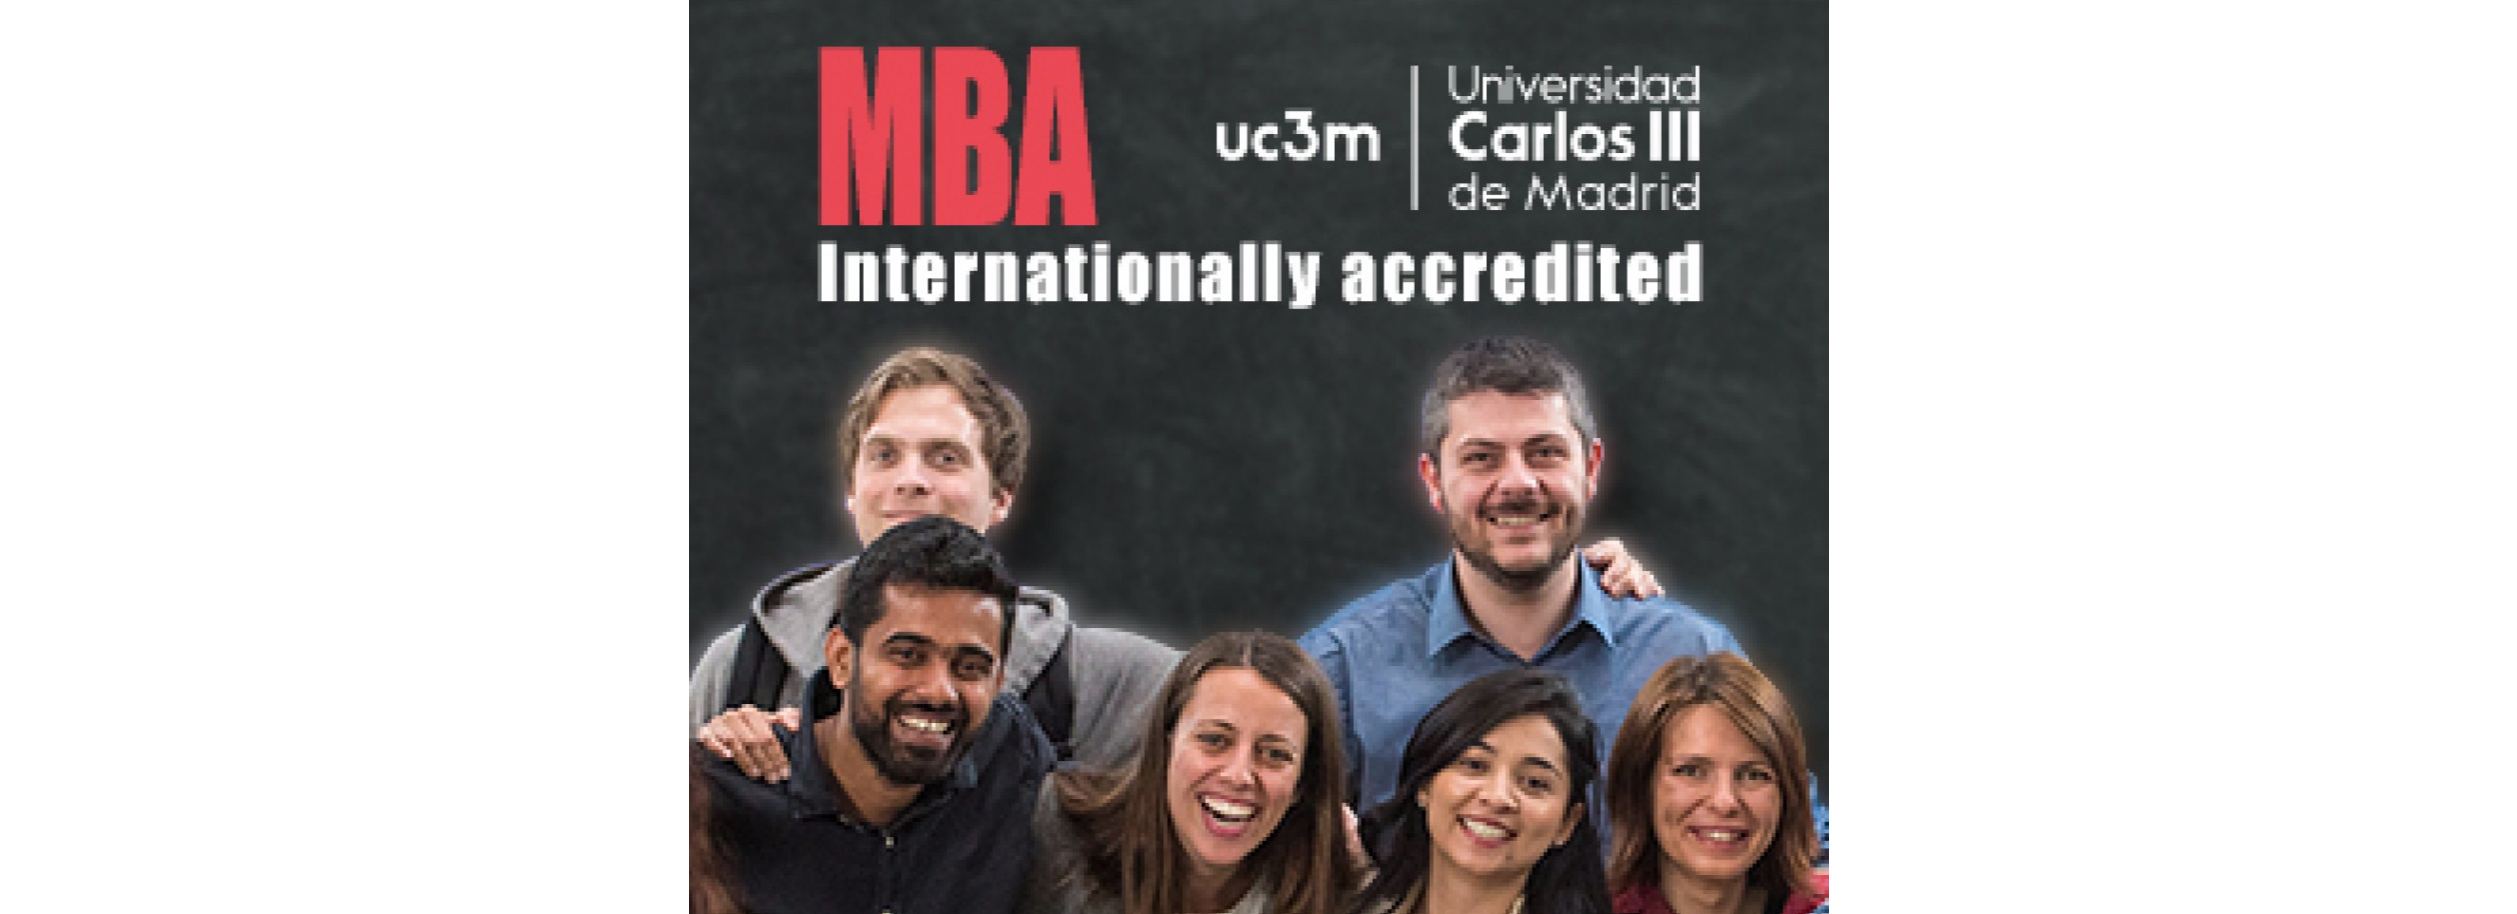 Our MBA, re-accredited by the prestigious AMBA